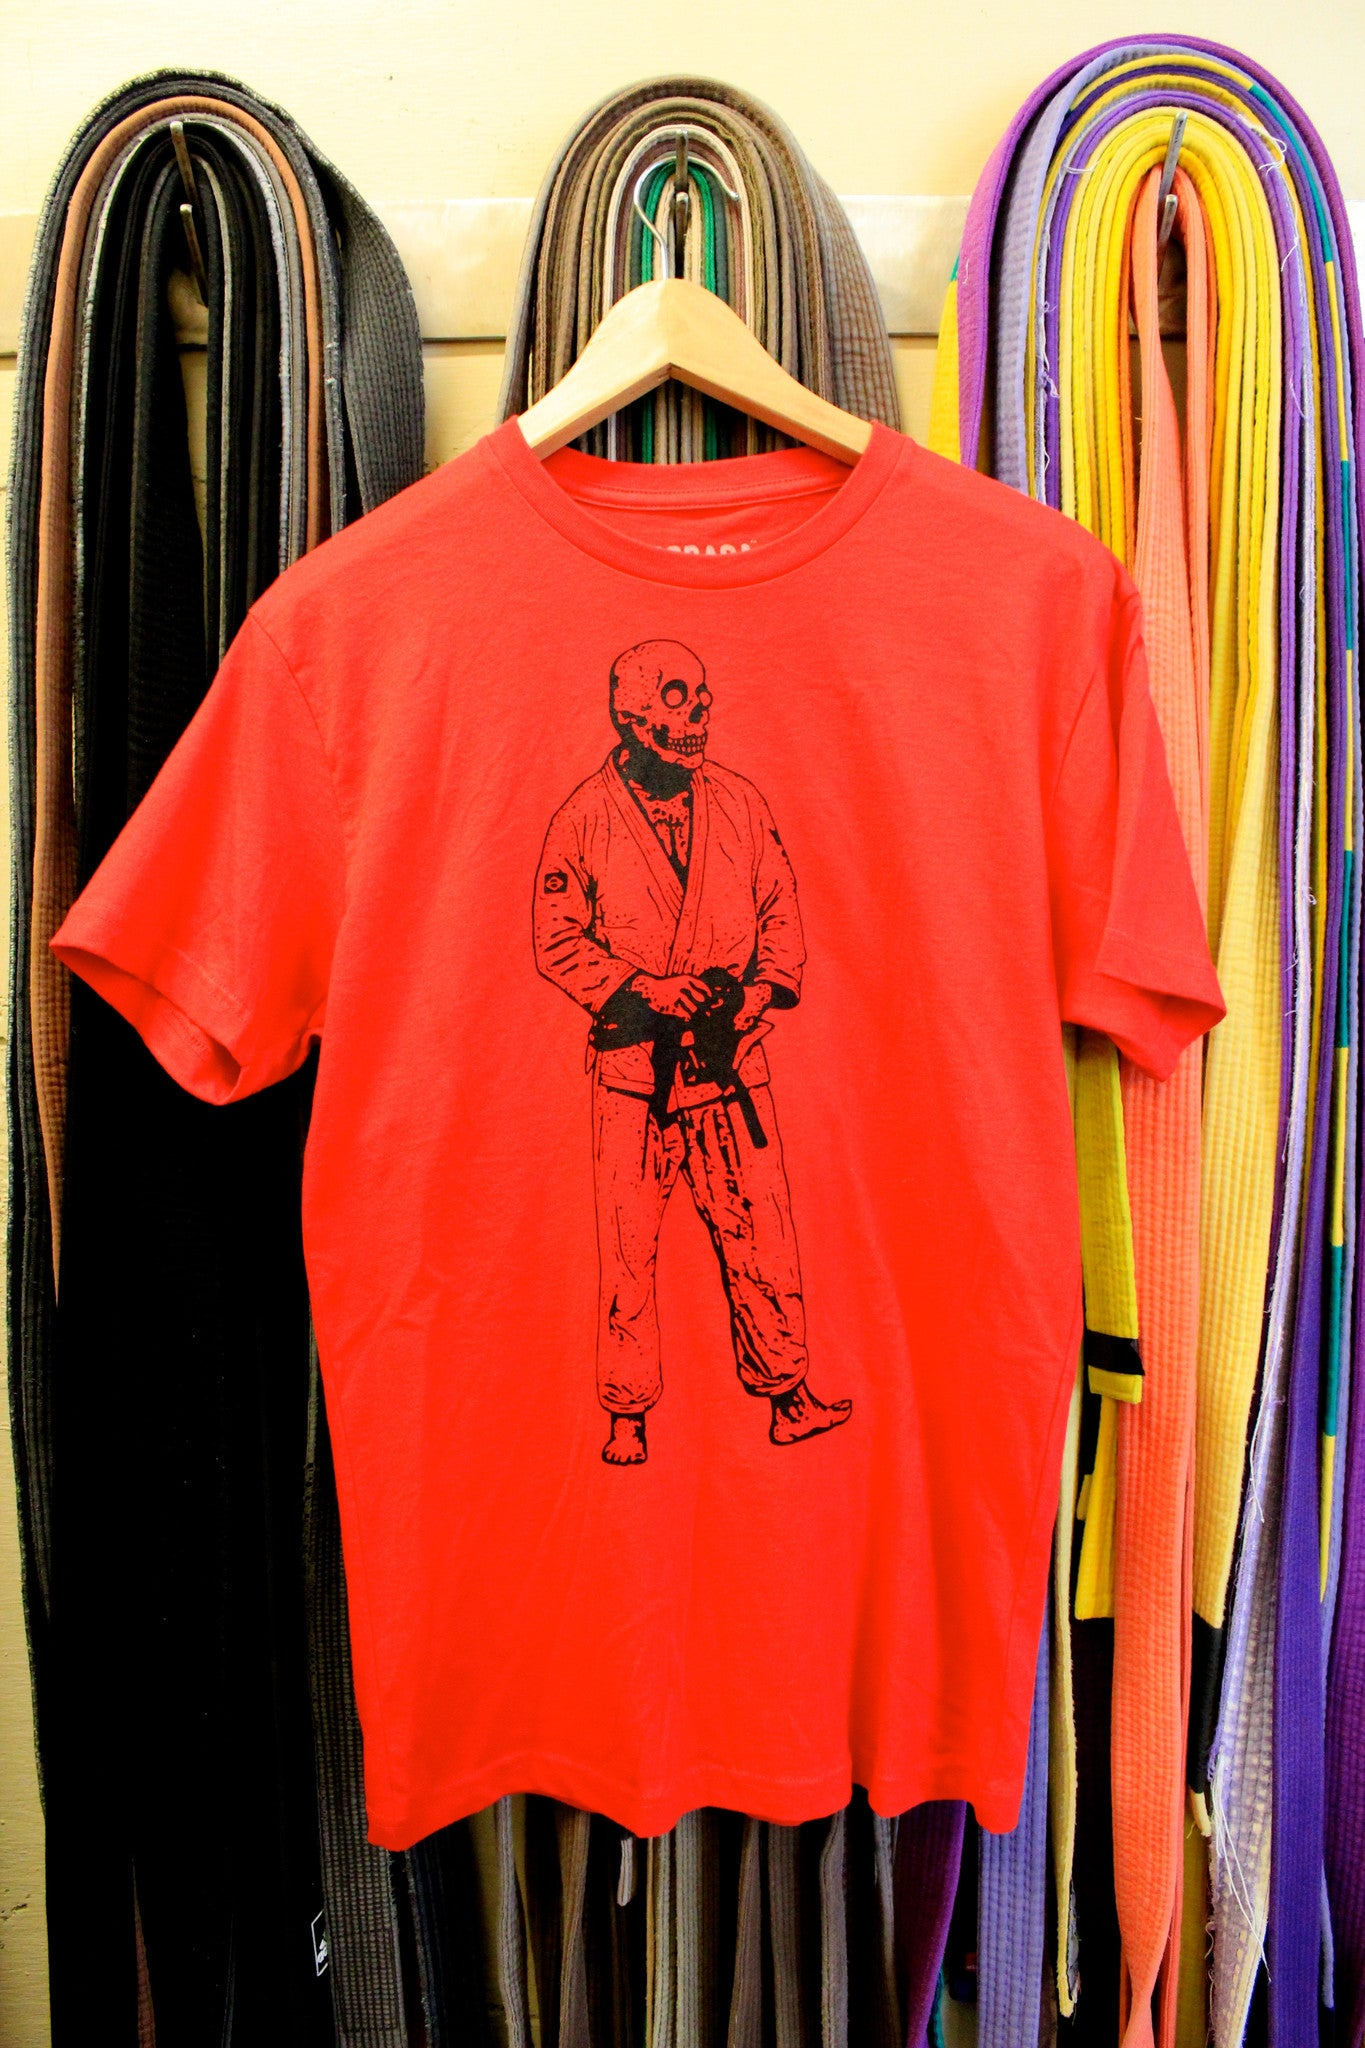 BJJ Skull Guy Red and Black T-Shirt